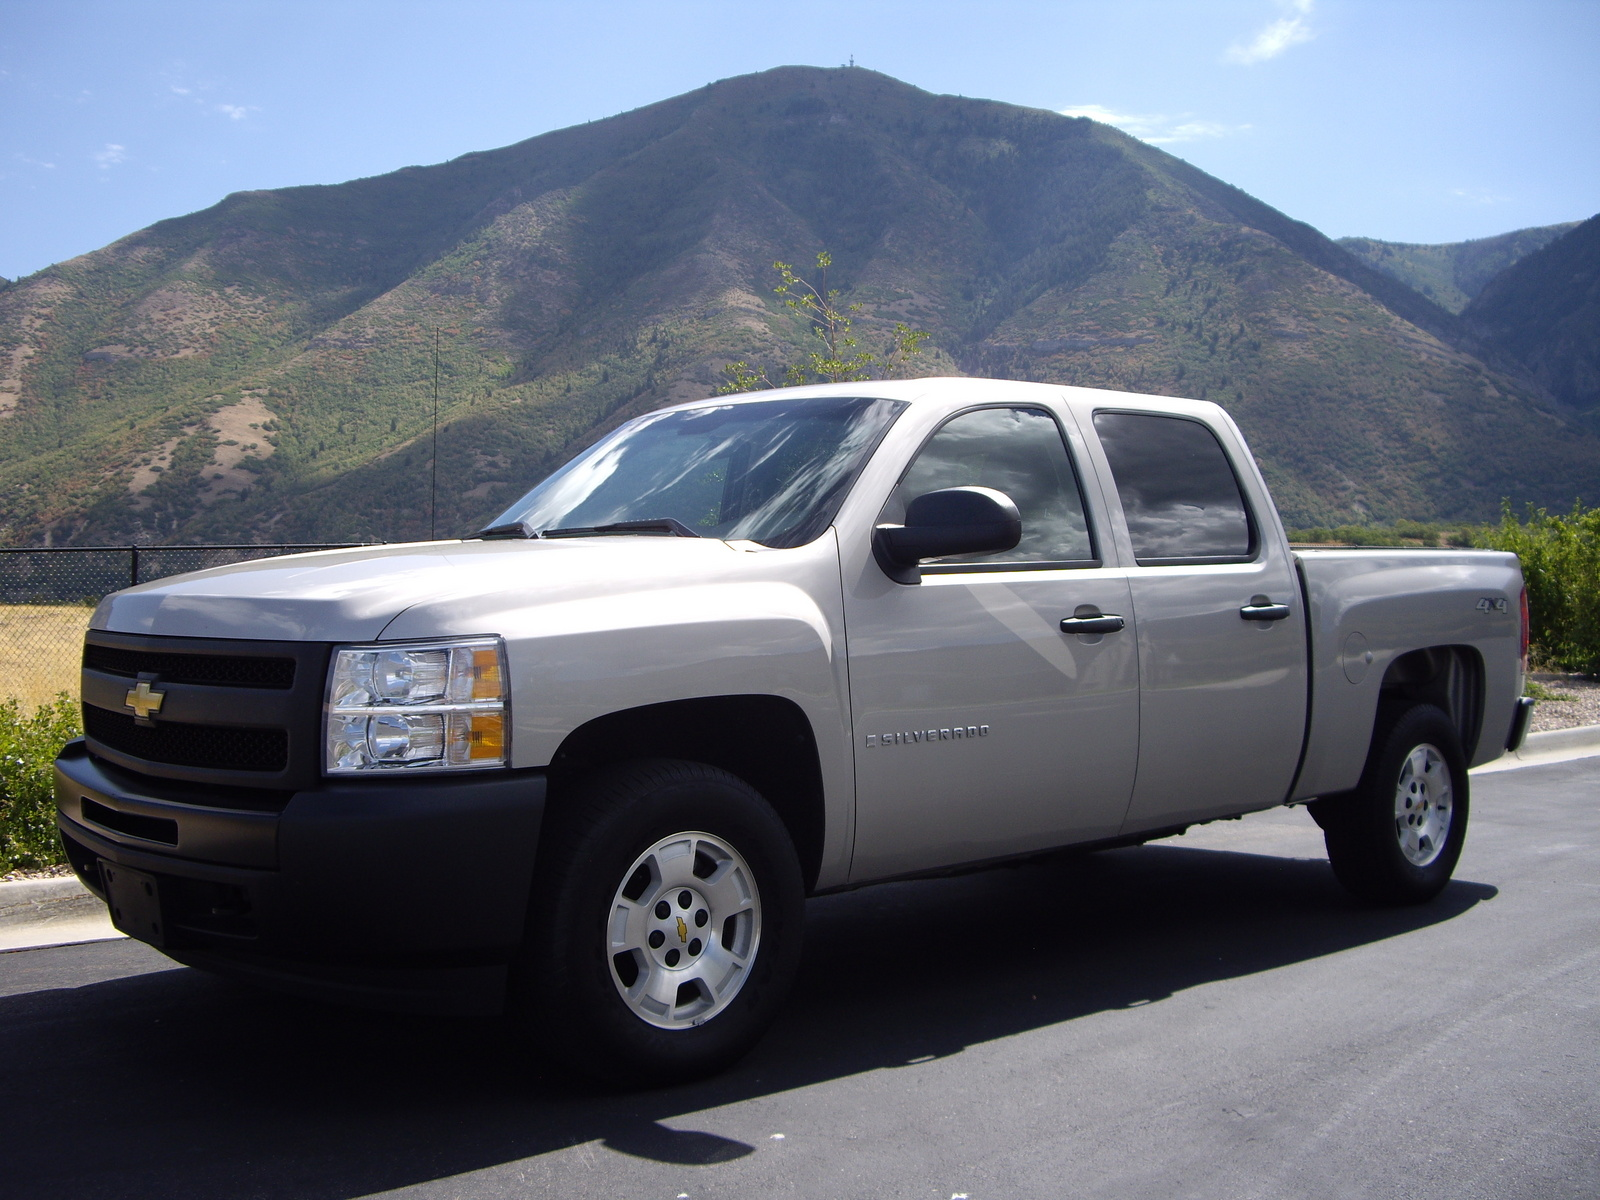 2009 chevrolet silverado prices specs reviews motor html. Black Bedroom Furniture Sets. Home Design Ideas